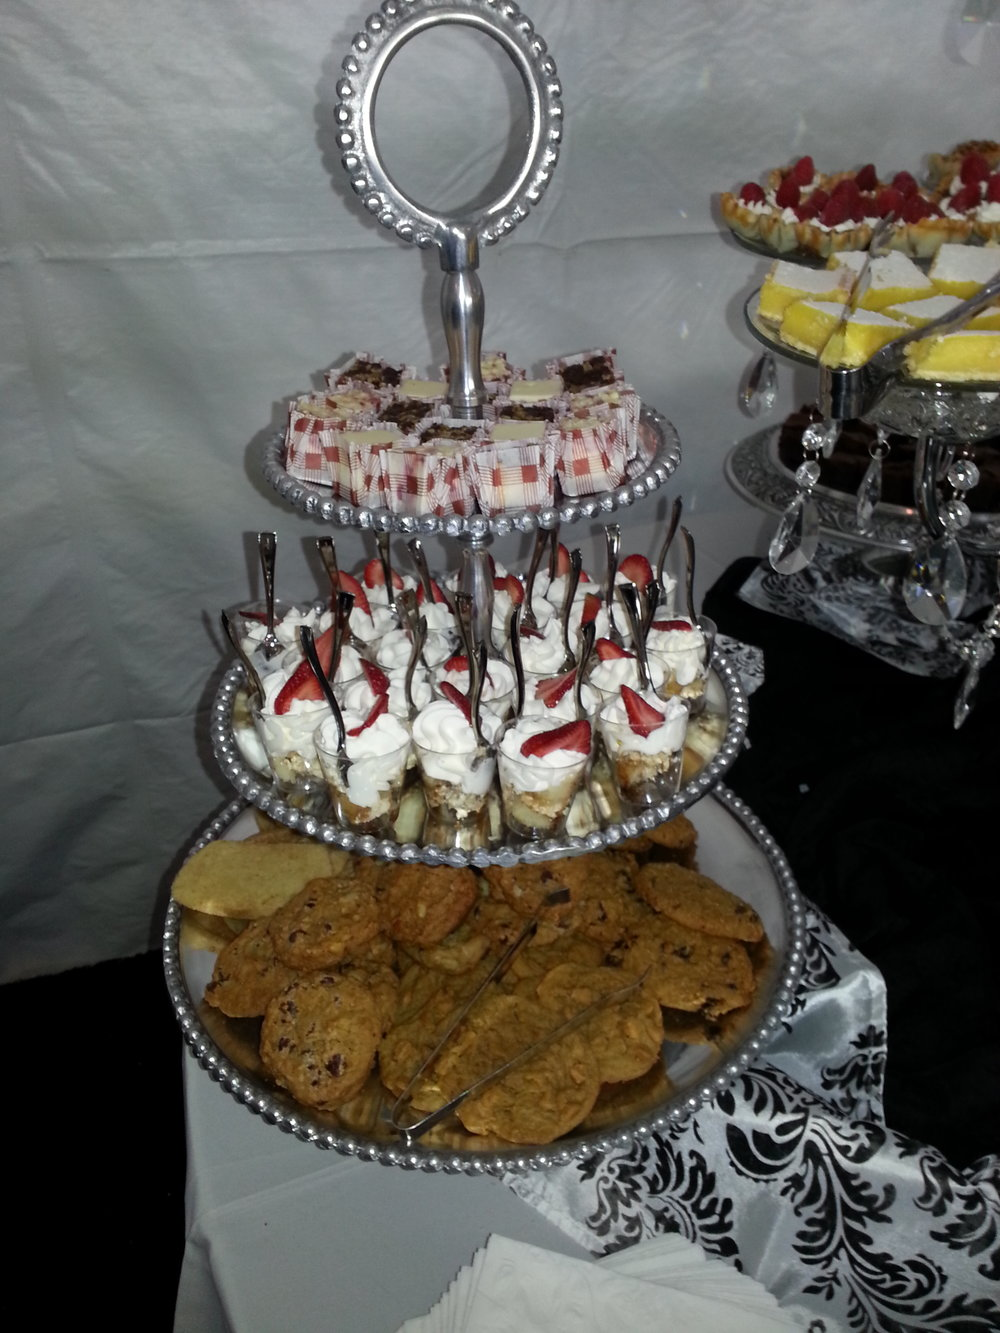 Coporate Event Desserts2.JPG